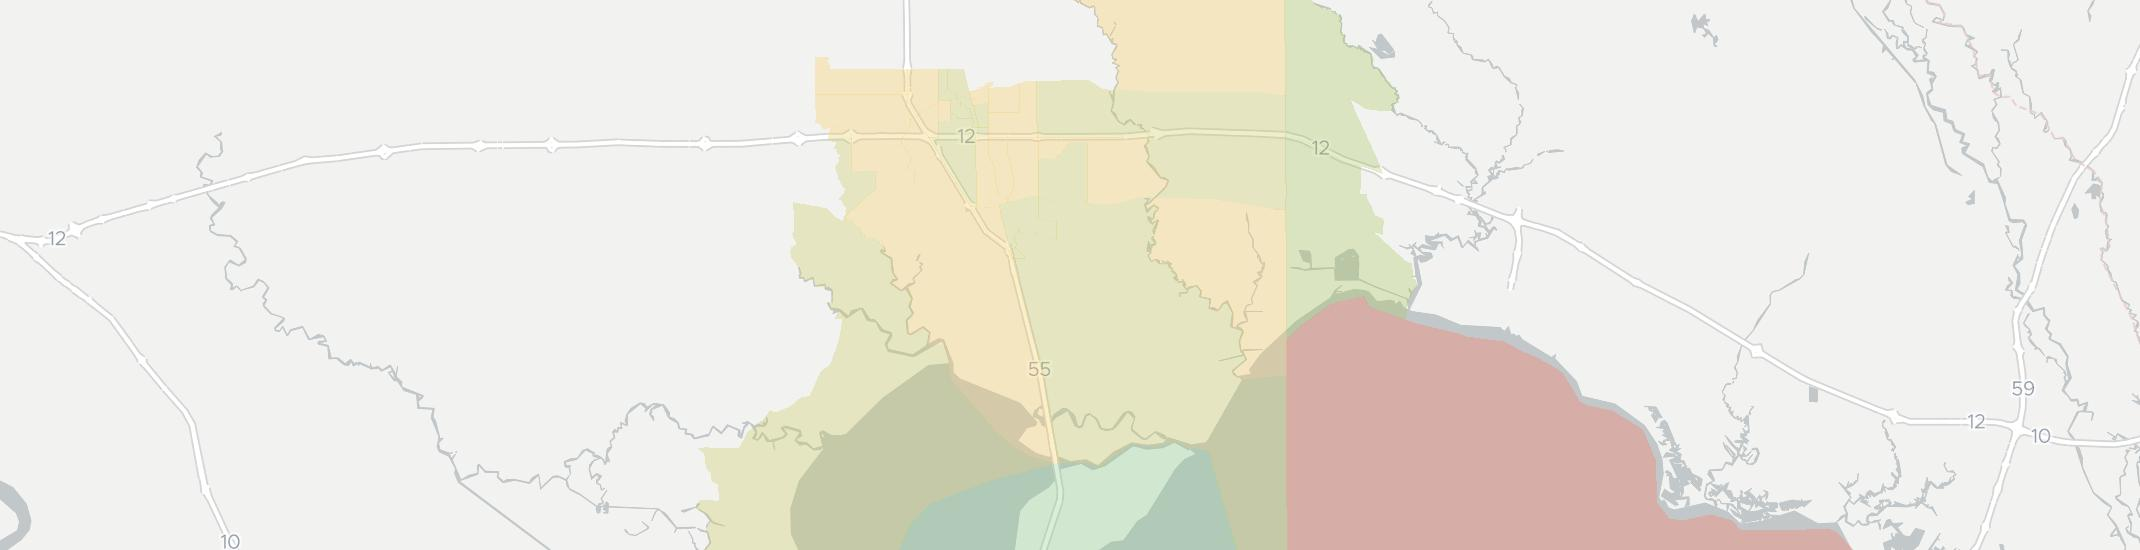 Ponchatoula Internet Competition Map. Click for interactive map.